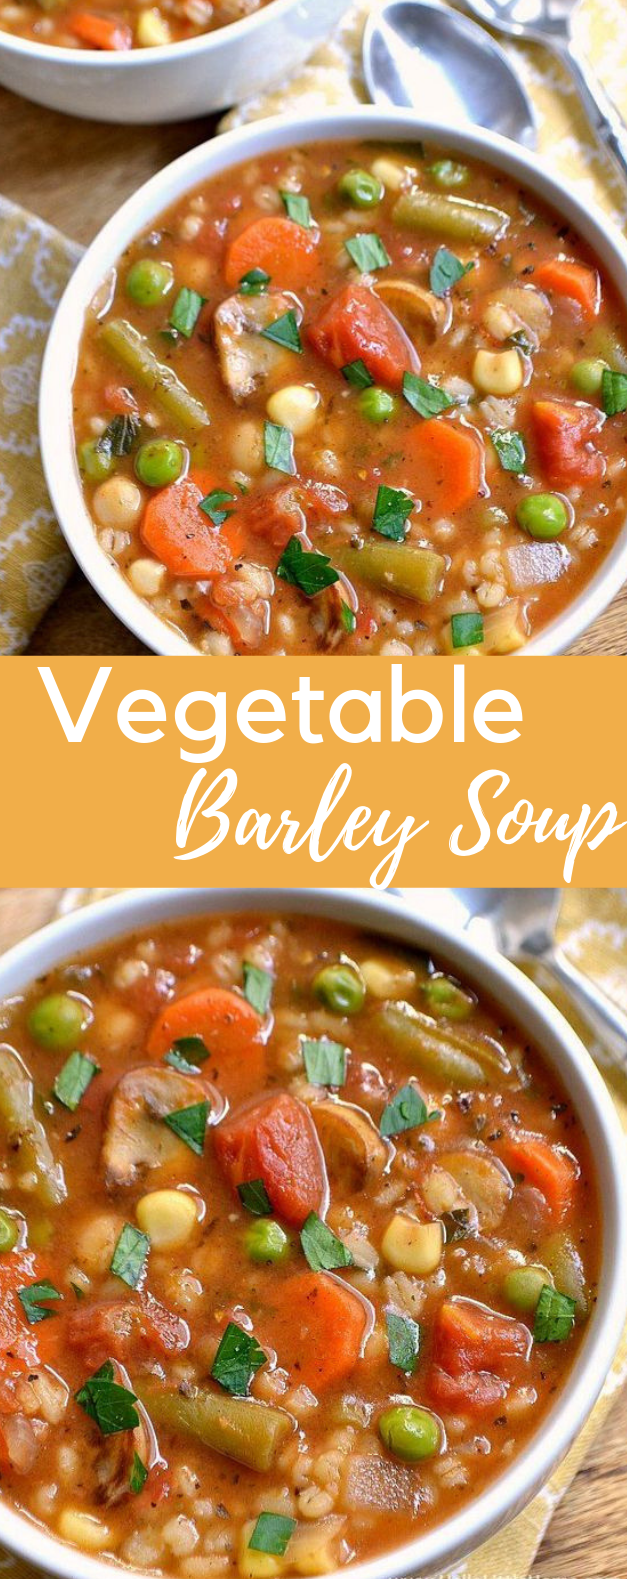 Vegetable Barley Soup #eathealthy #familyfood